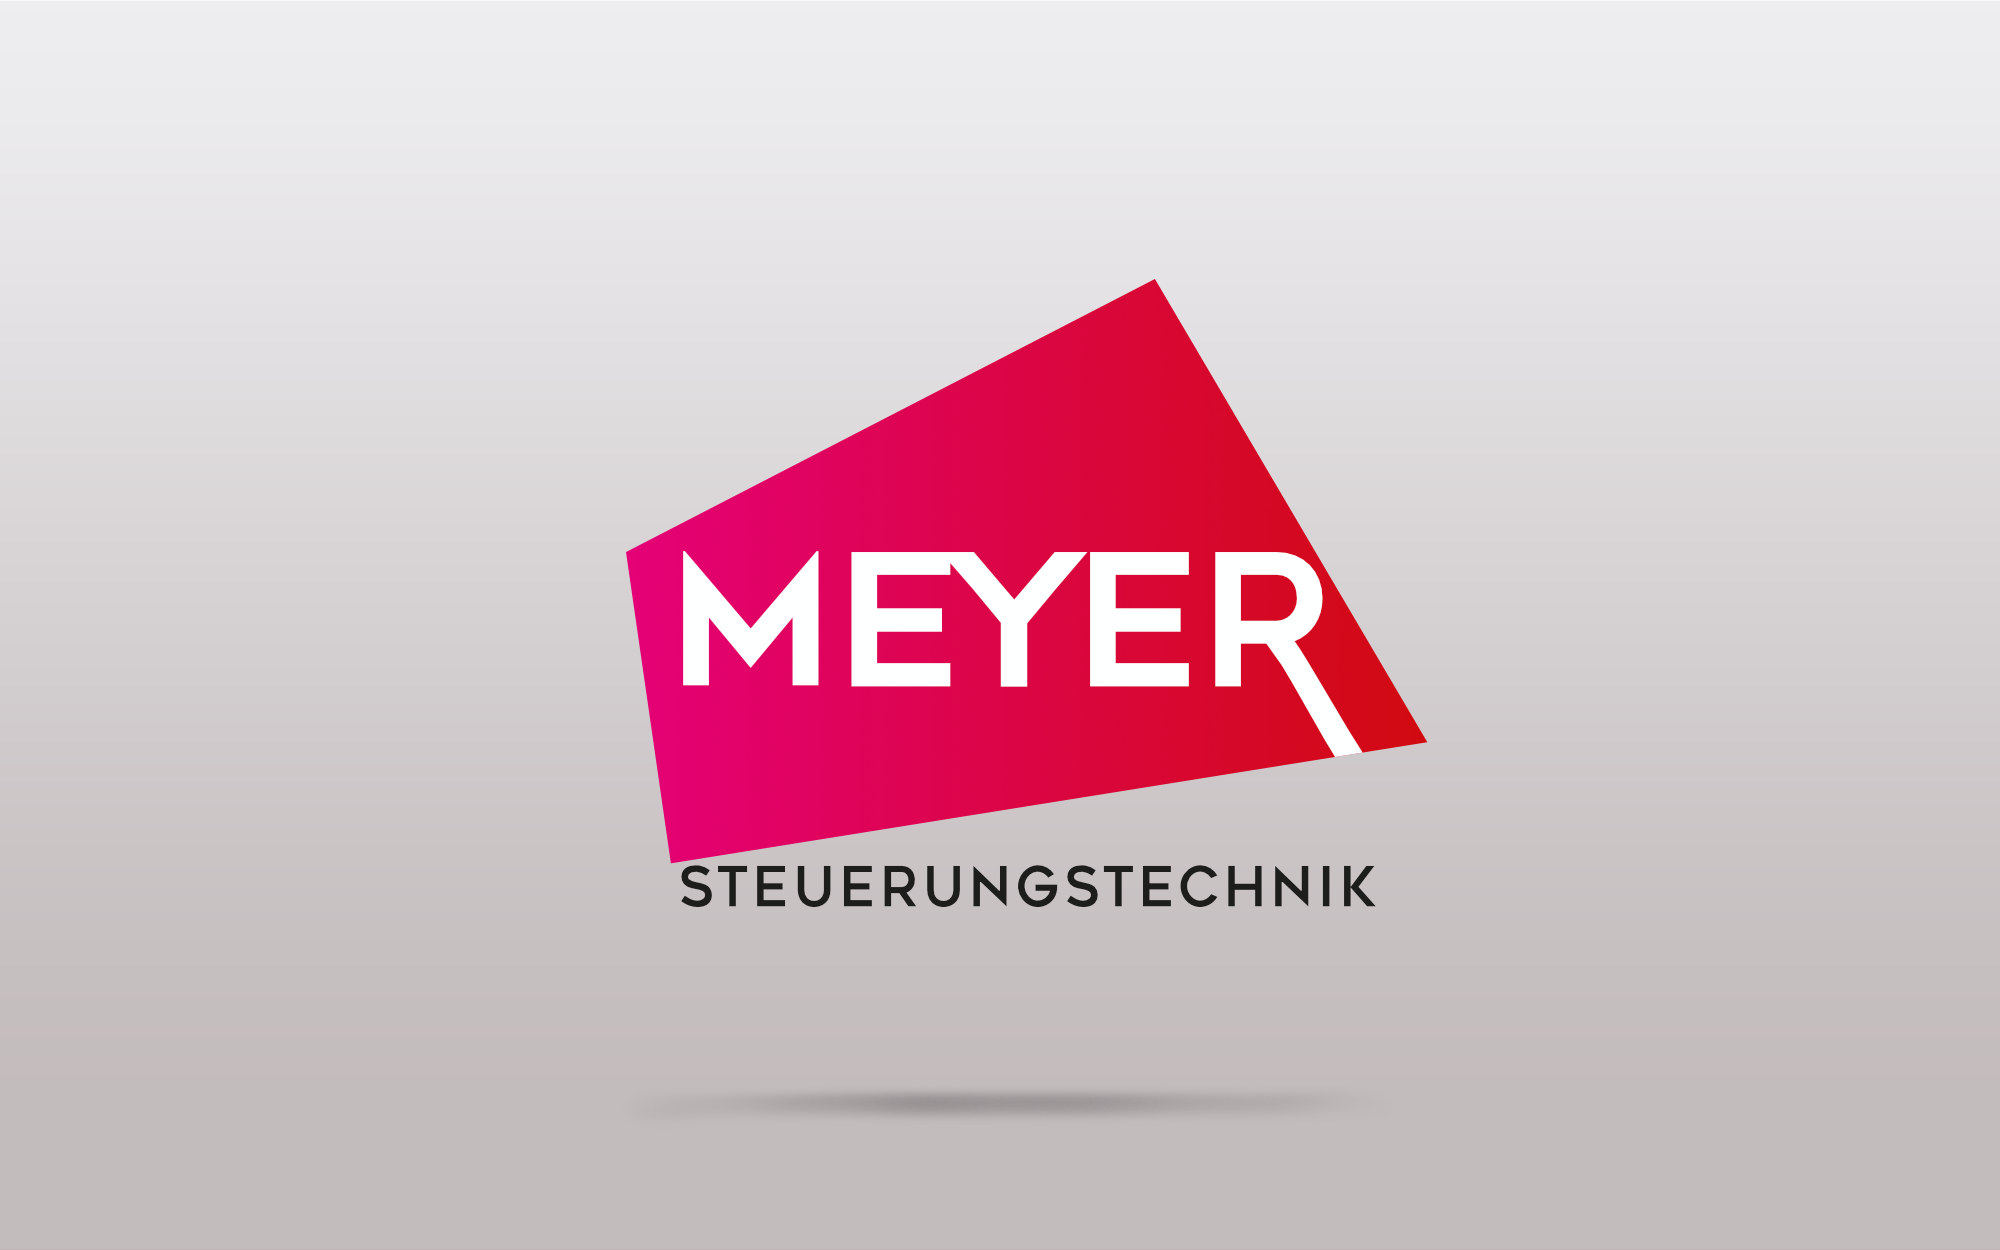 Portfolio Corporate Design Meyer Steuerungstechnik